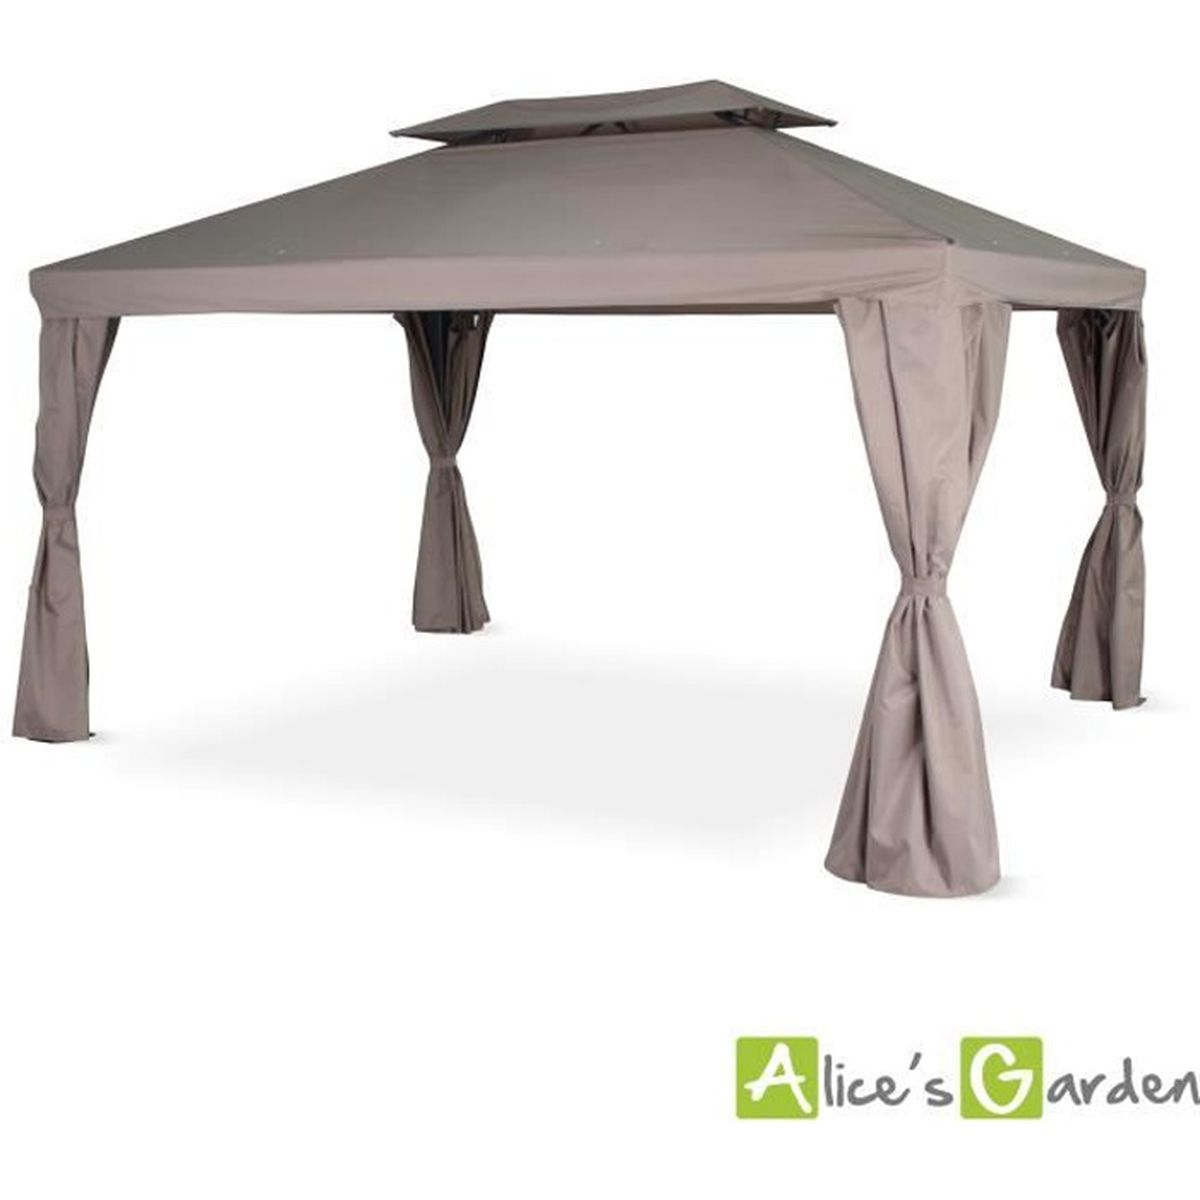 tente de jardin pergola aluminium 3x4m divodorum taupe avec rideaux coulissant tonnelle abri. Black Bedroom Furniture Sets. Home Design Ideas